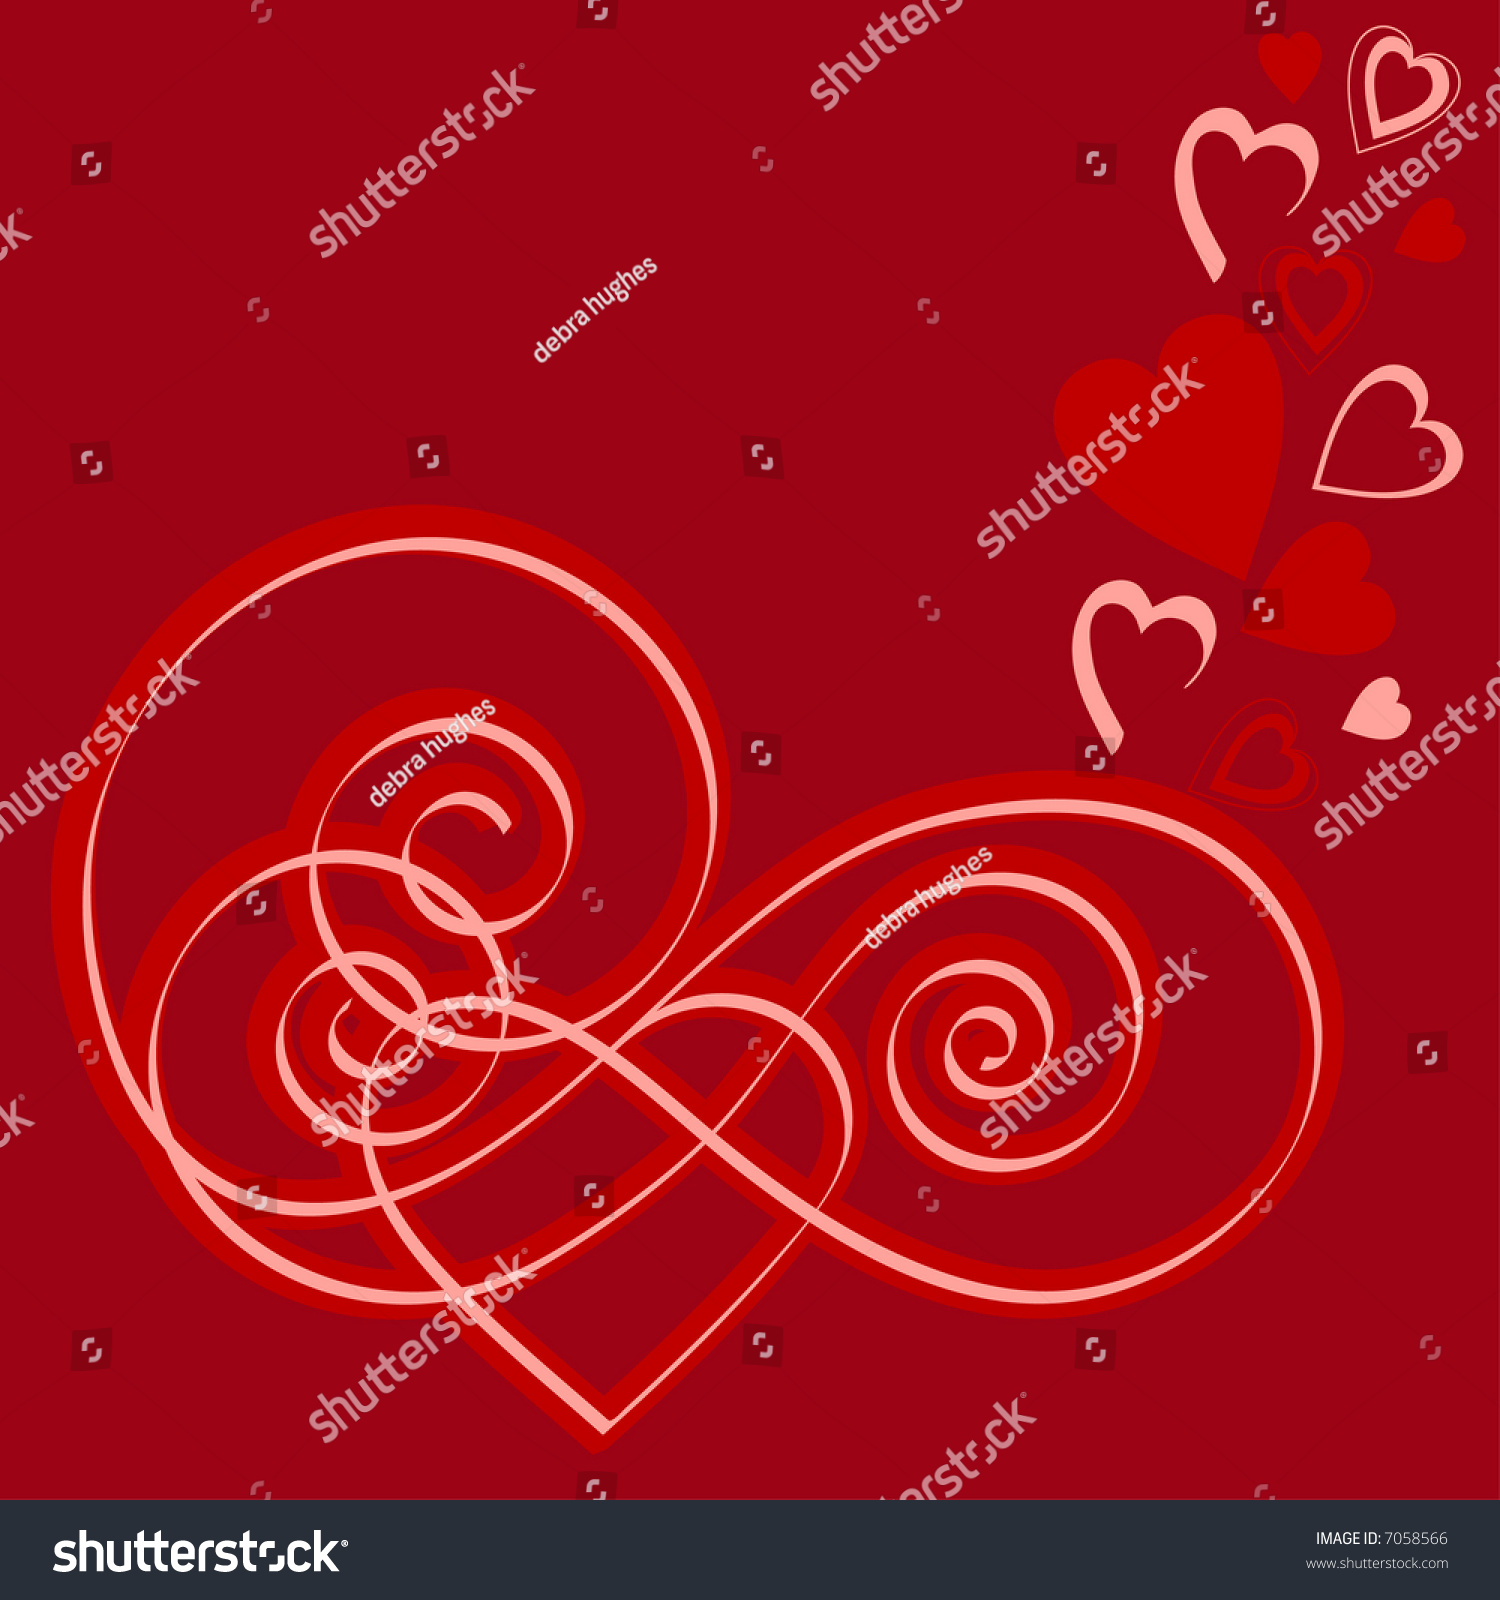 Valentine calligraphy hearts stock vector